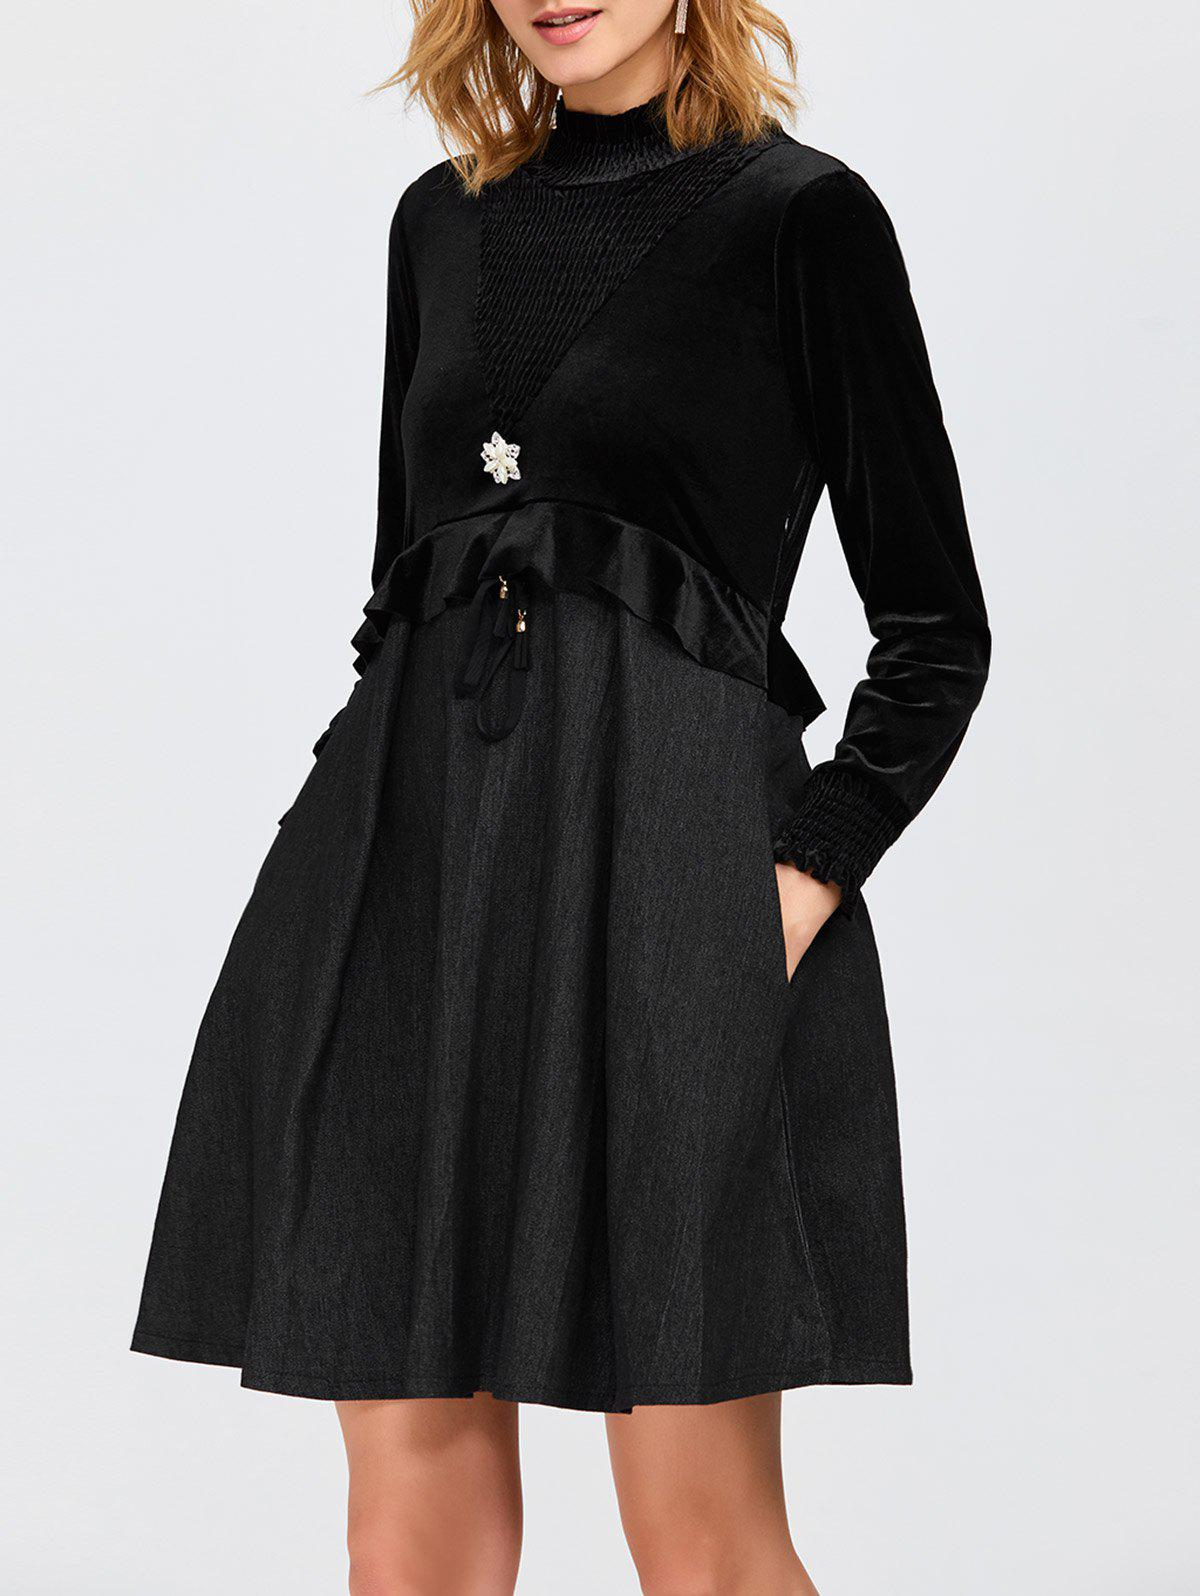 High Neck Ruffled Velvet Panel Swing Dress - BLACK S